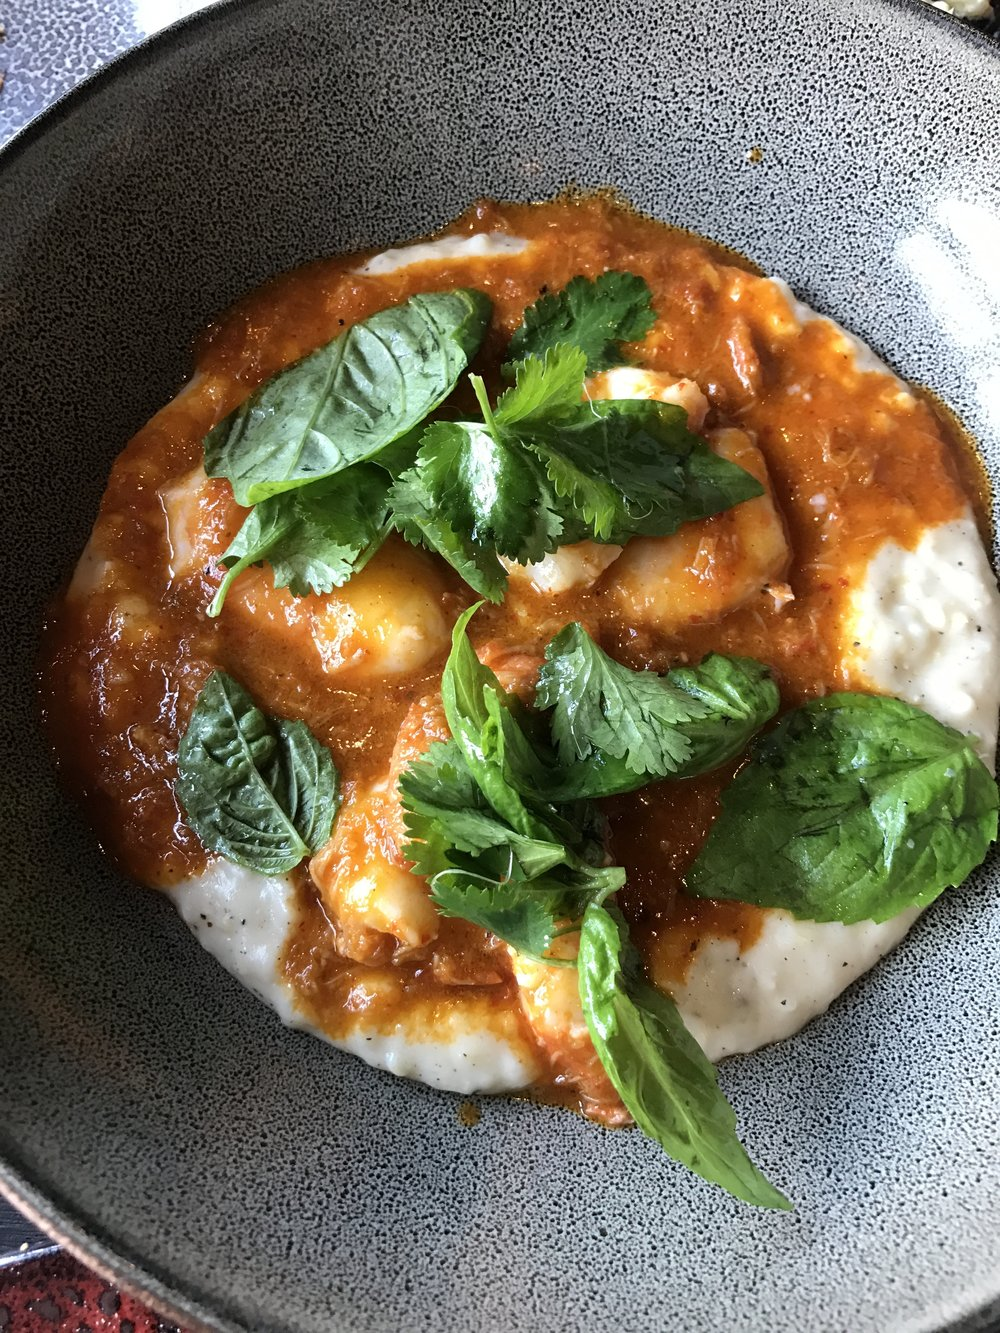 Anson Mills grits with Key West pink shrimp, crab curry, and Thai basil.